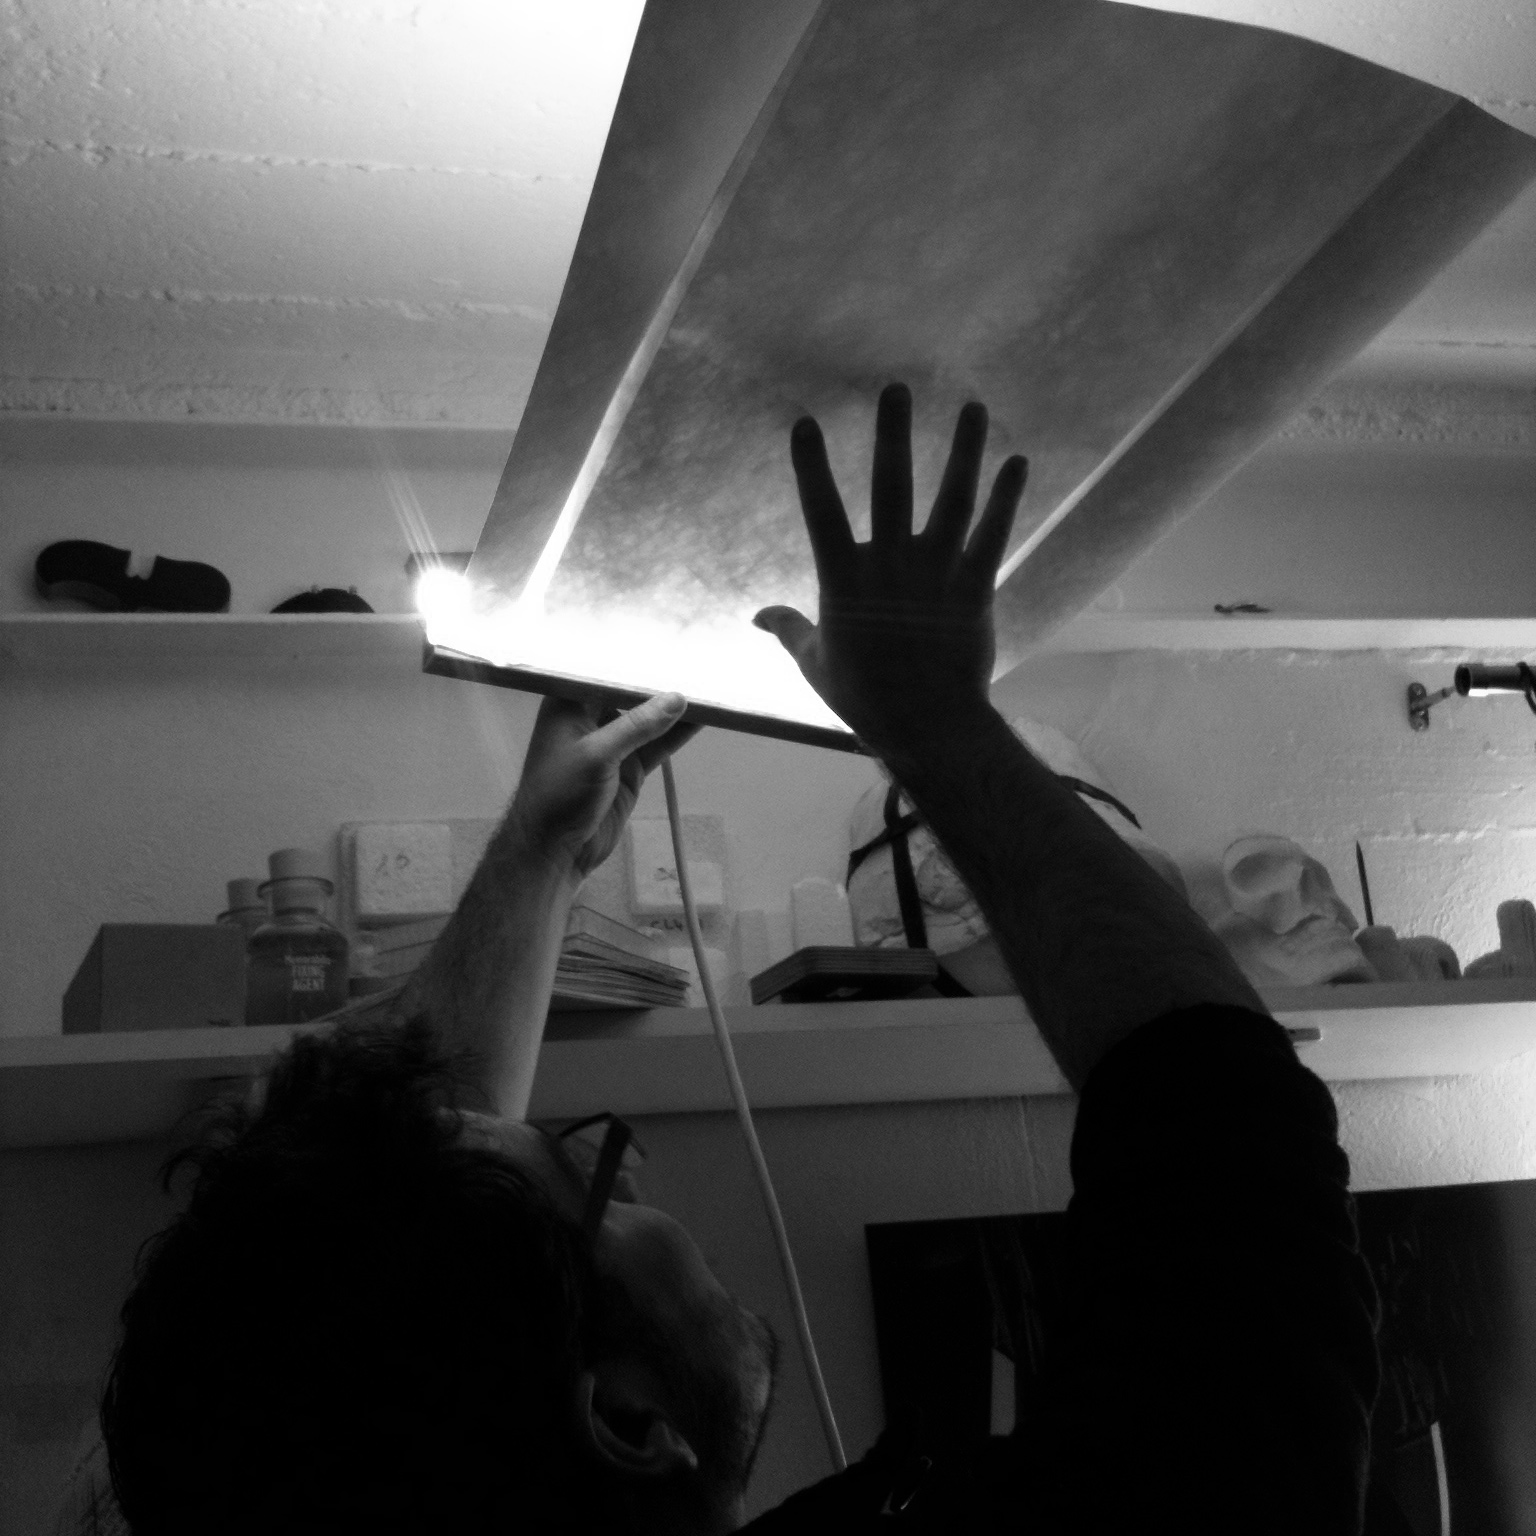 Making of light PLUME - Aide à projet VIA 2013 - design by bold - photo bold - www.bold-design.fr